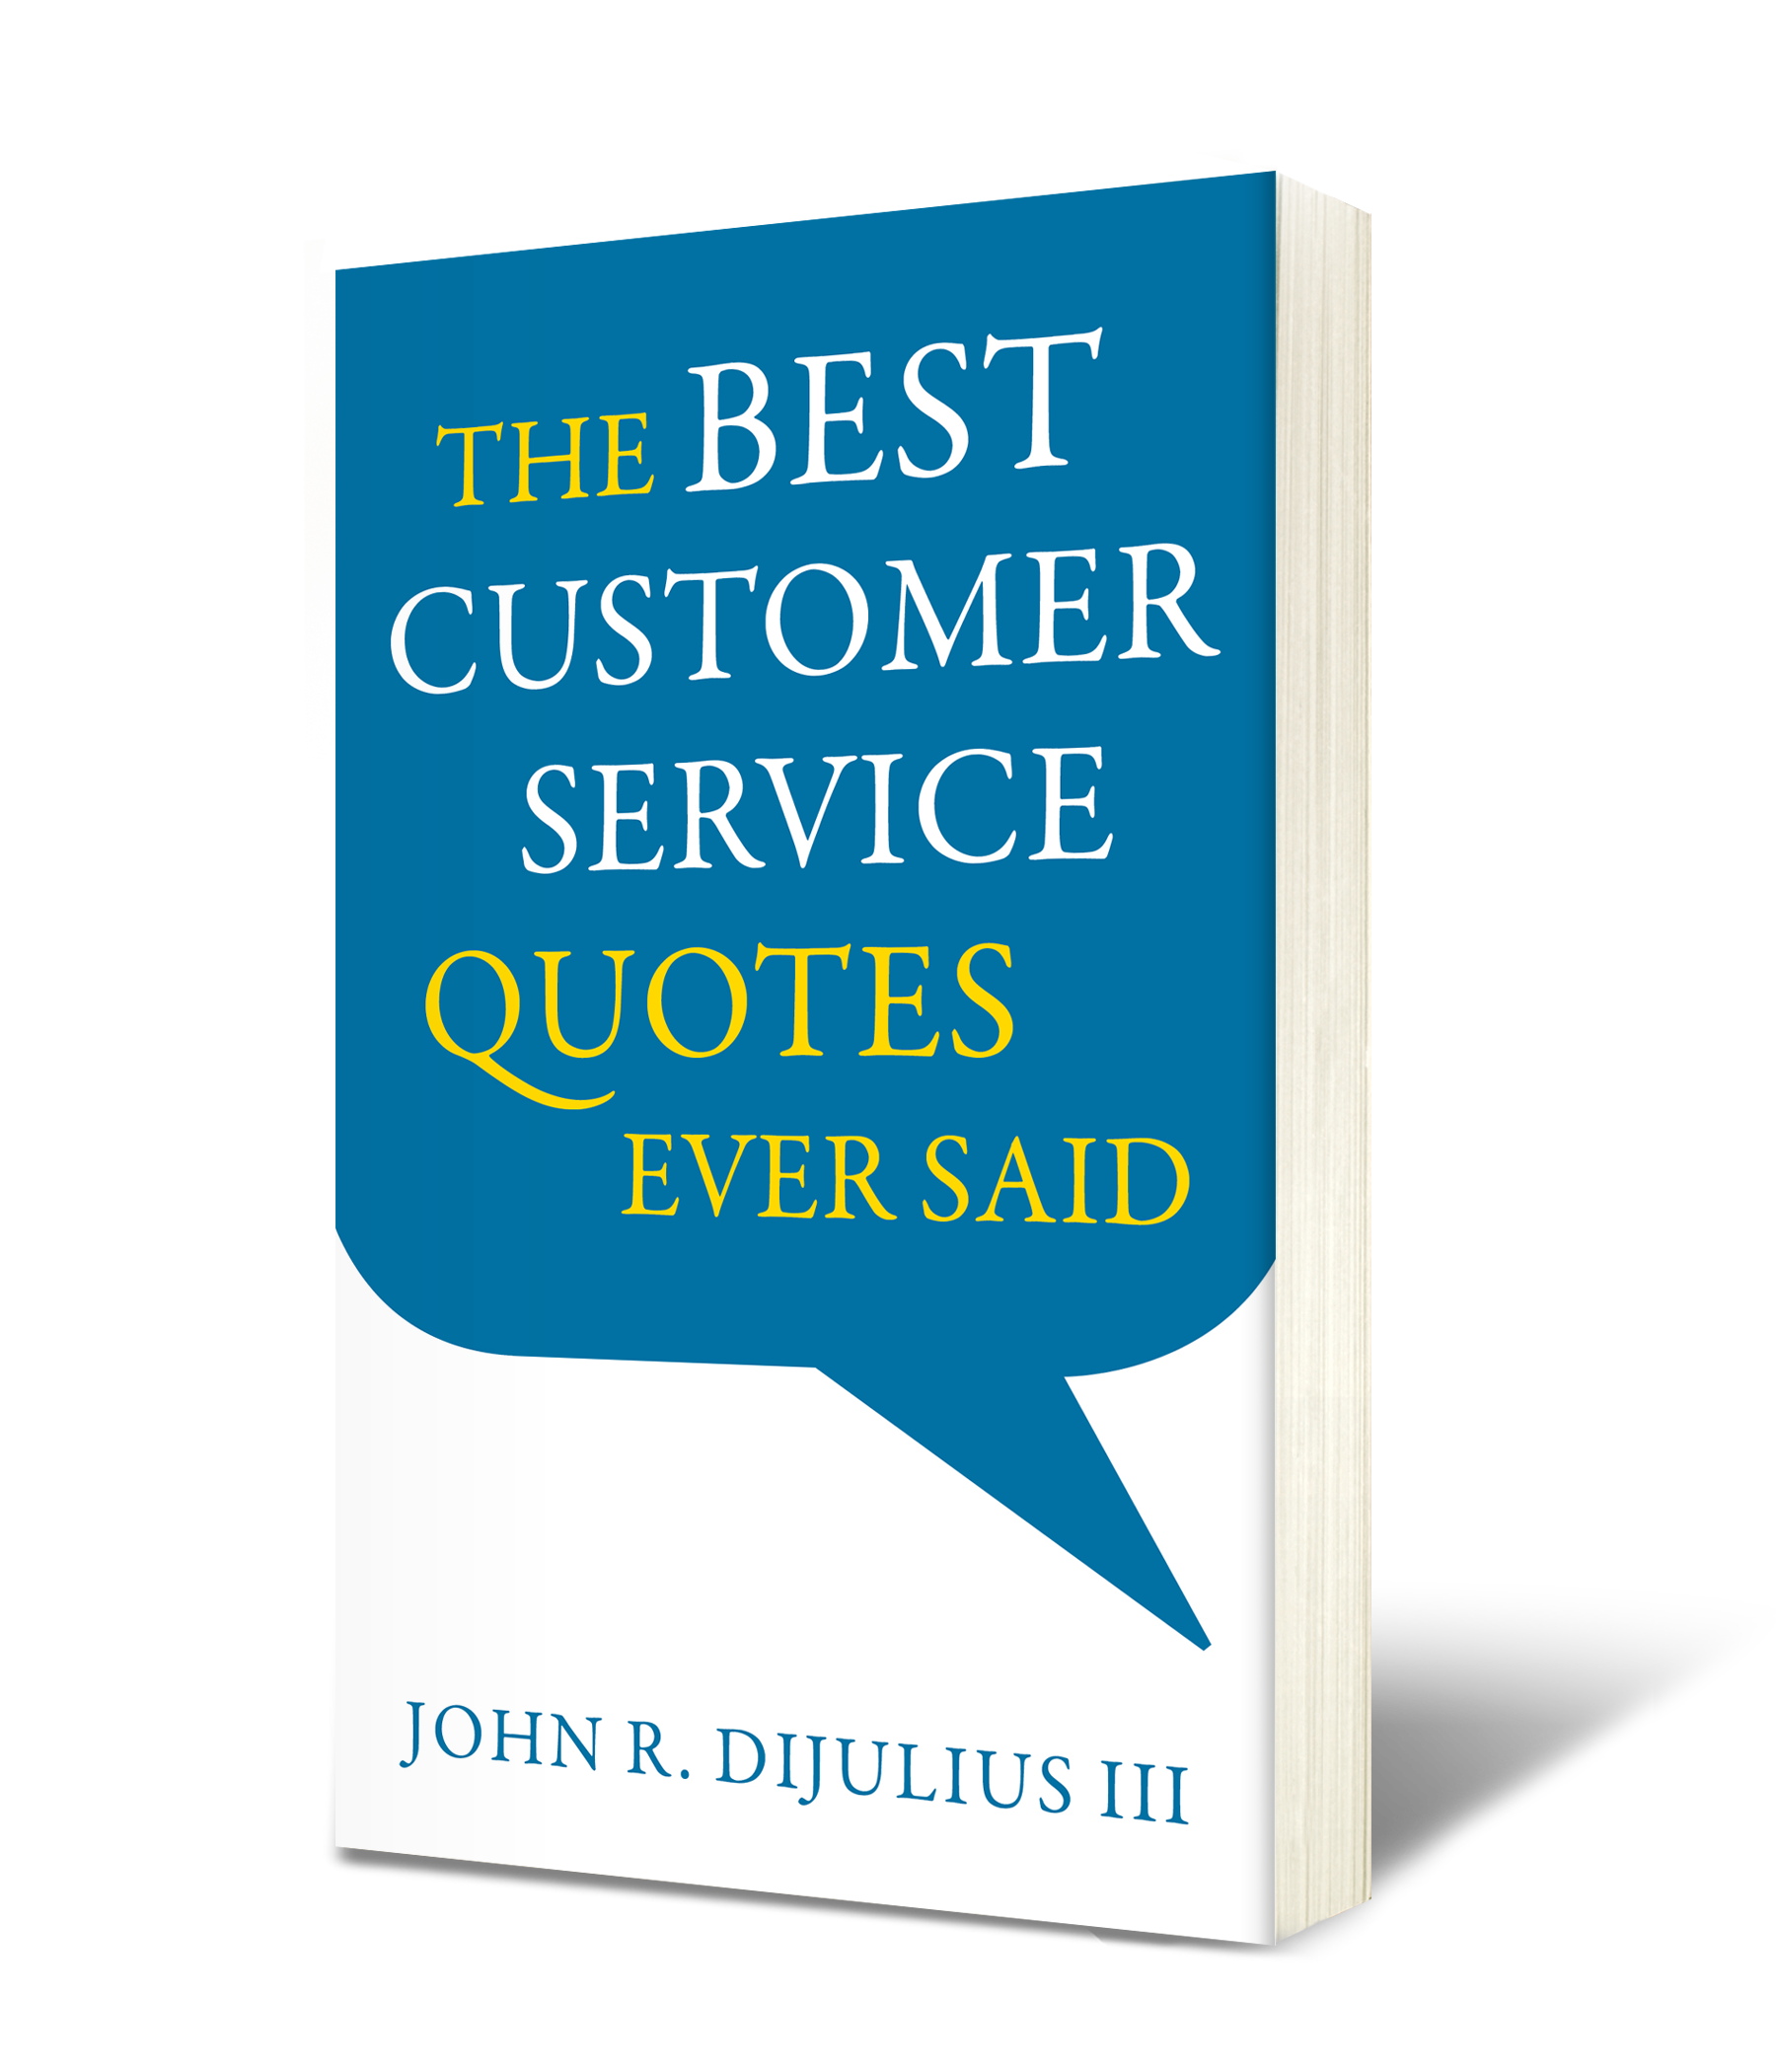 The Best Customer Service Quotes Ever Said The Dijulius Group